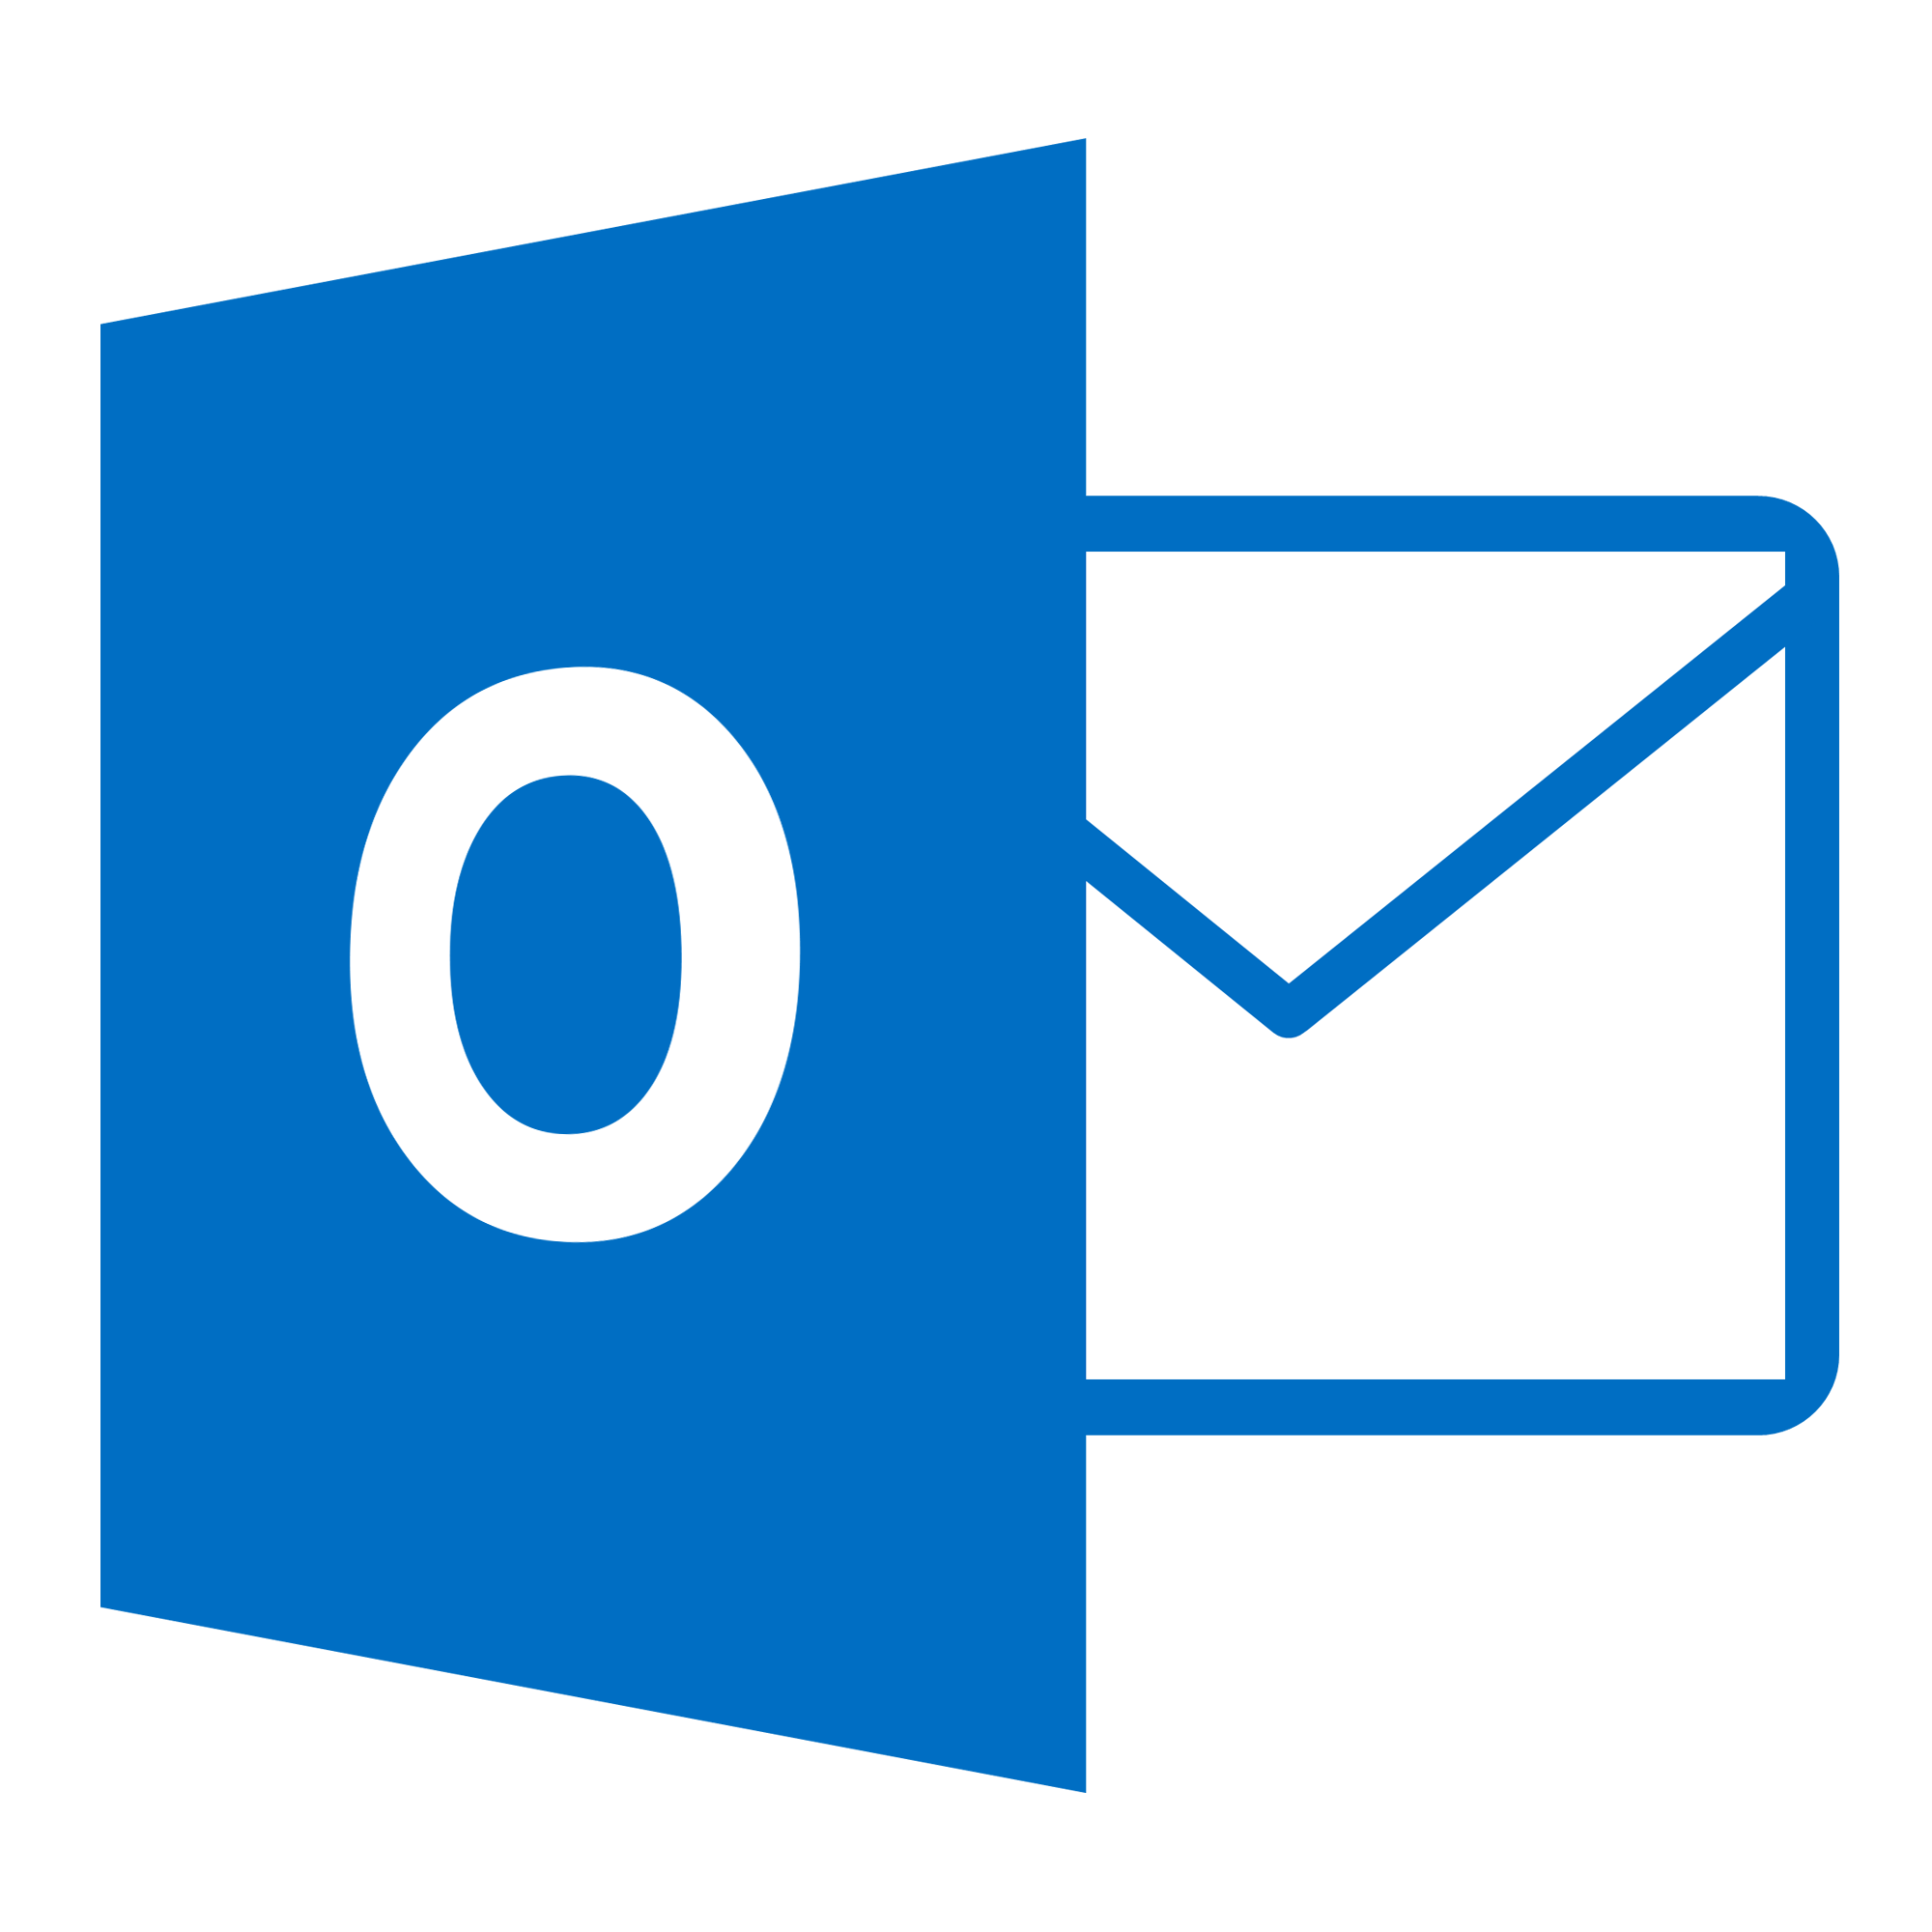 13 2010 Outlook Web App Icon Images